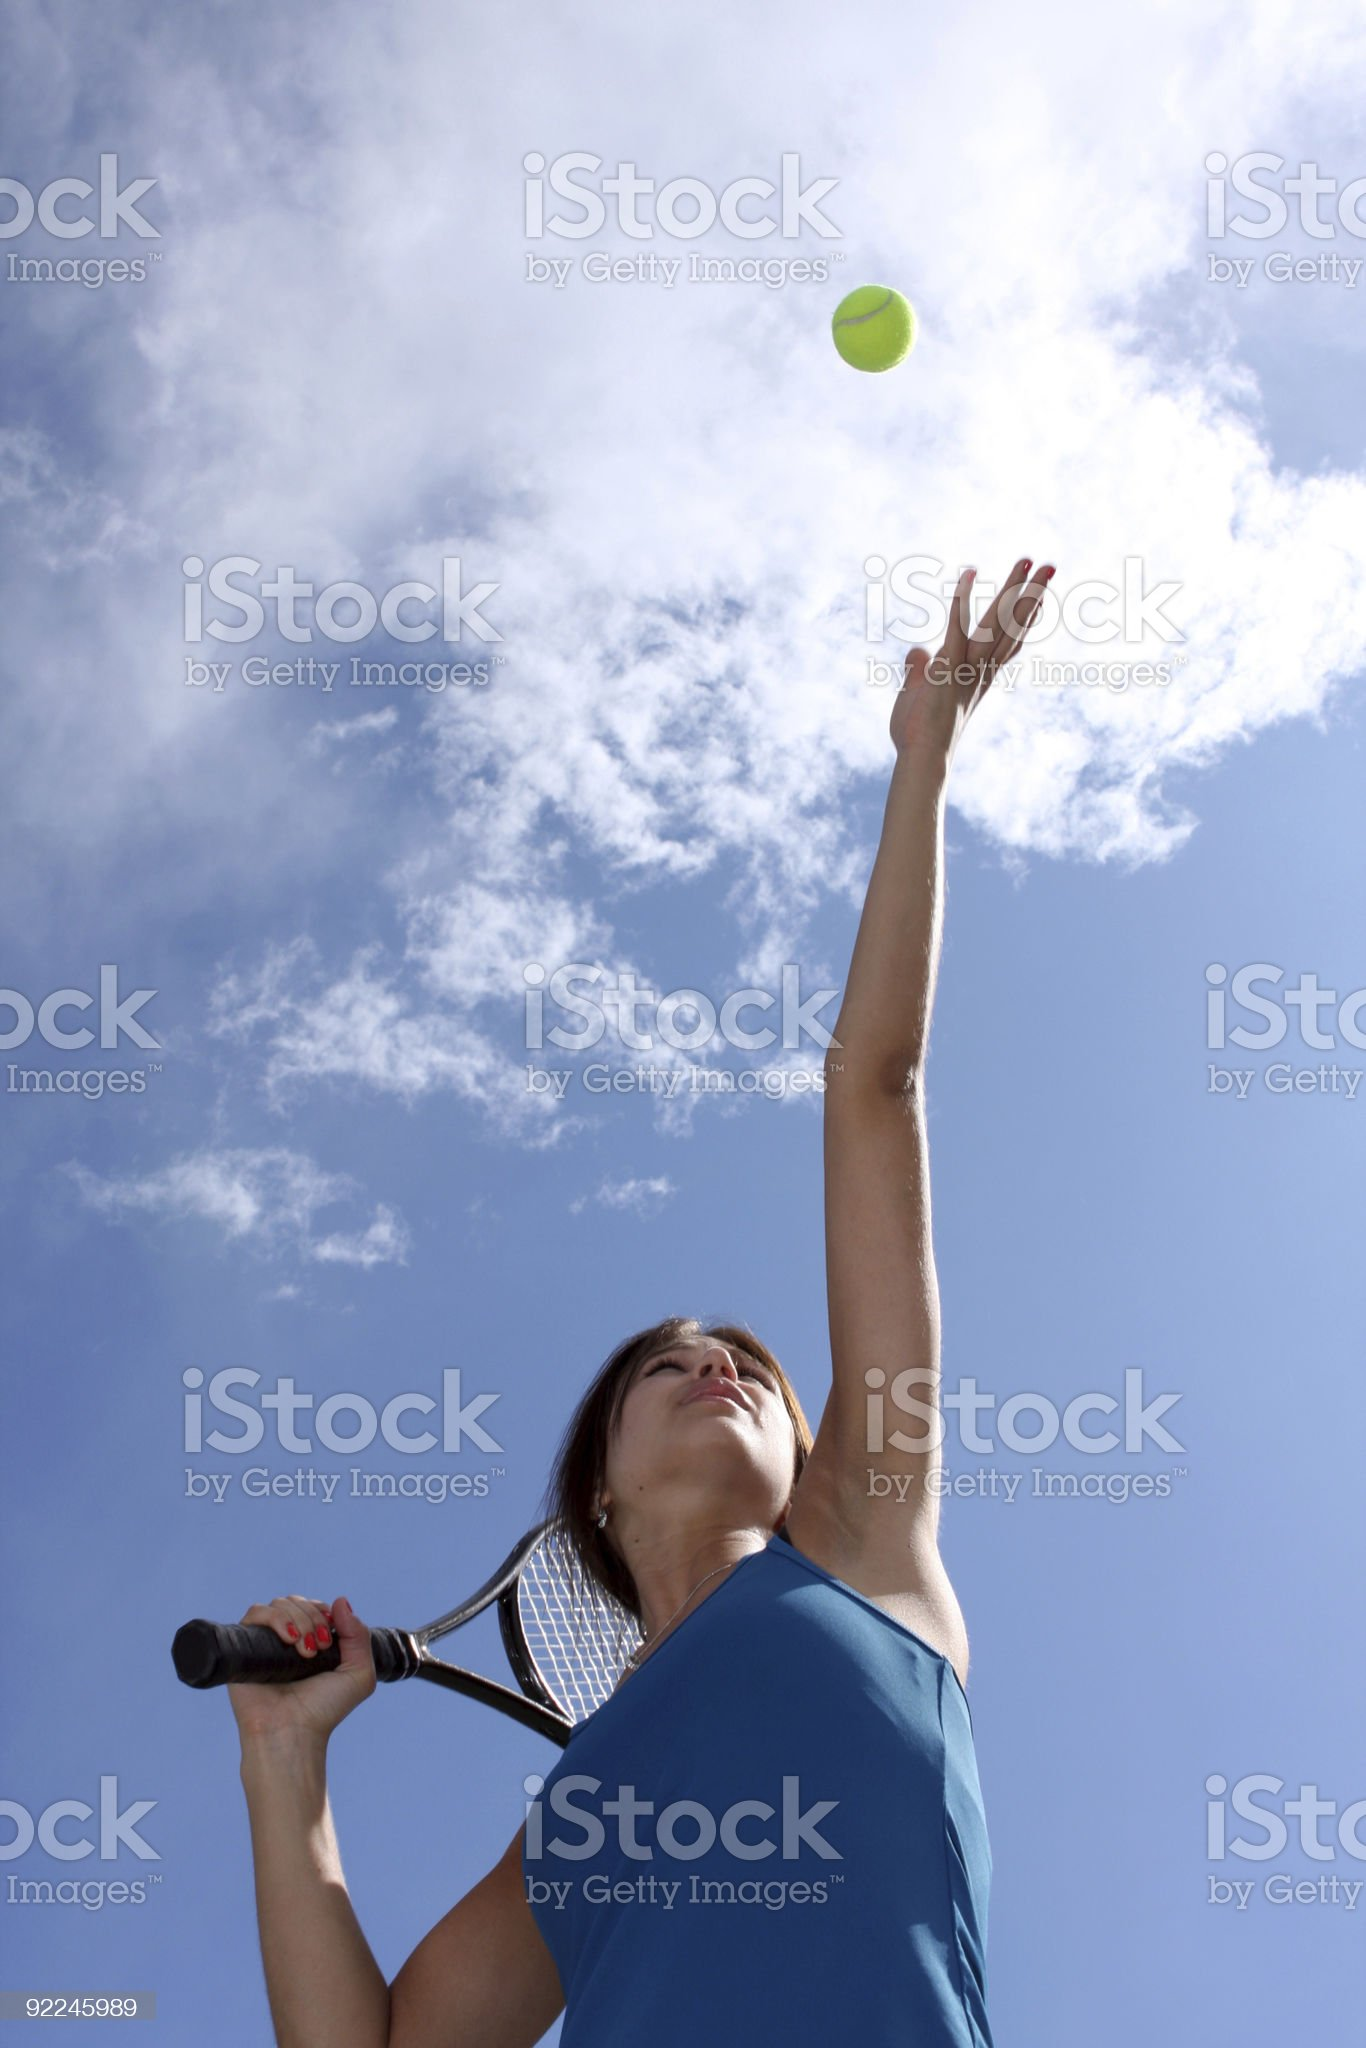 Female Tennis Player Tossing a Serve royalty-free stock photo